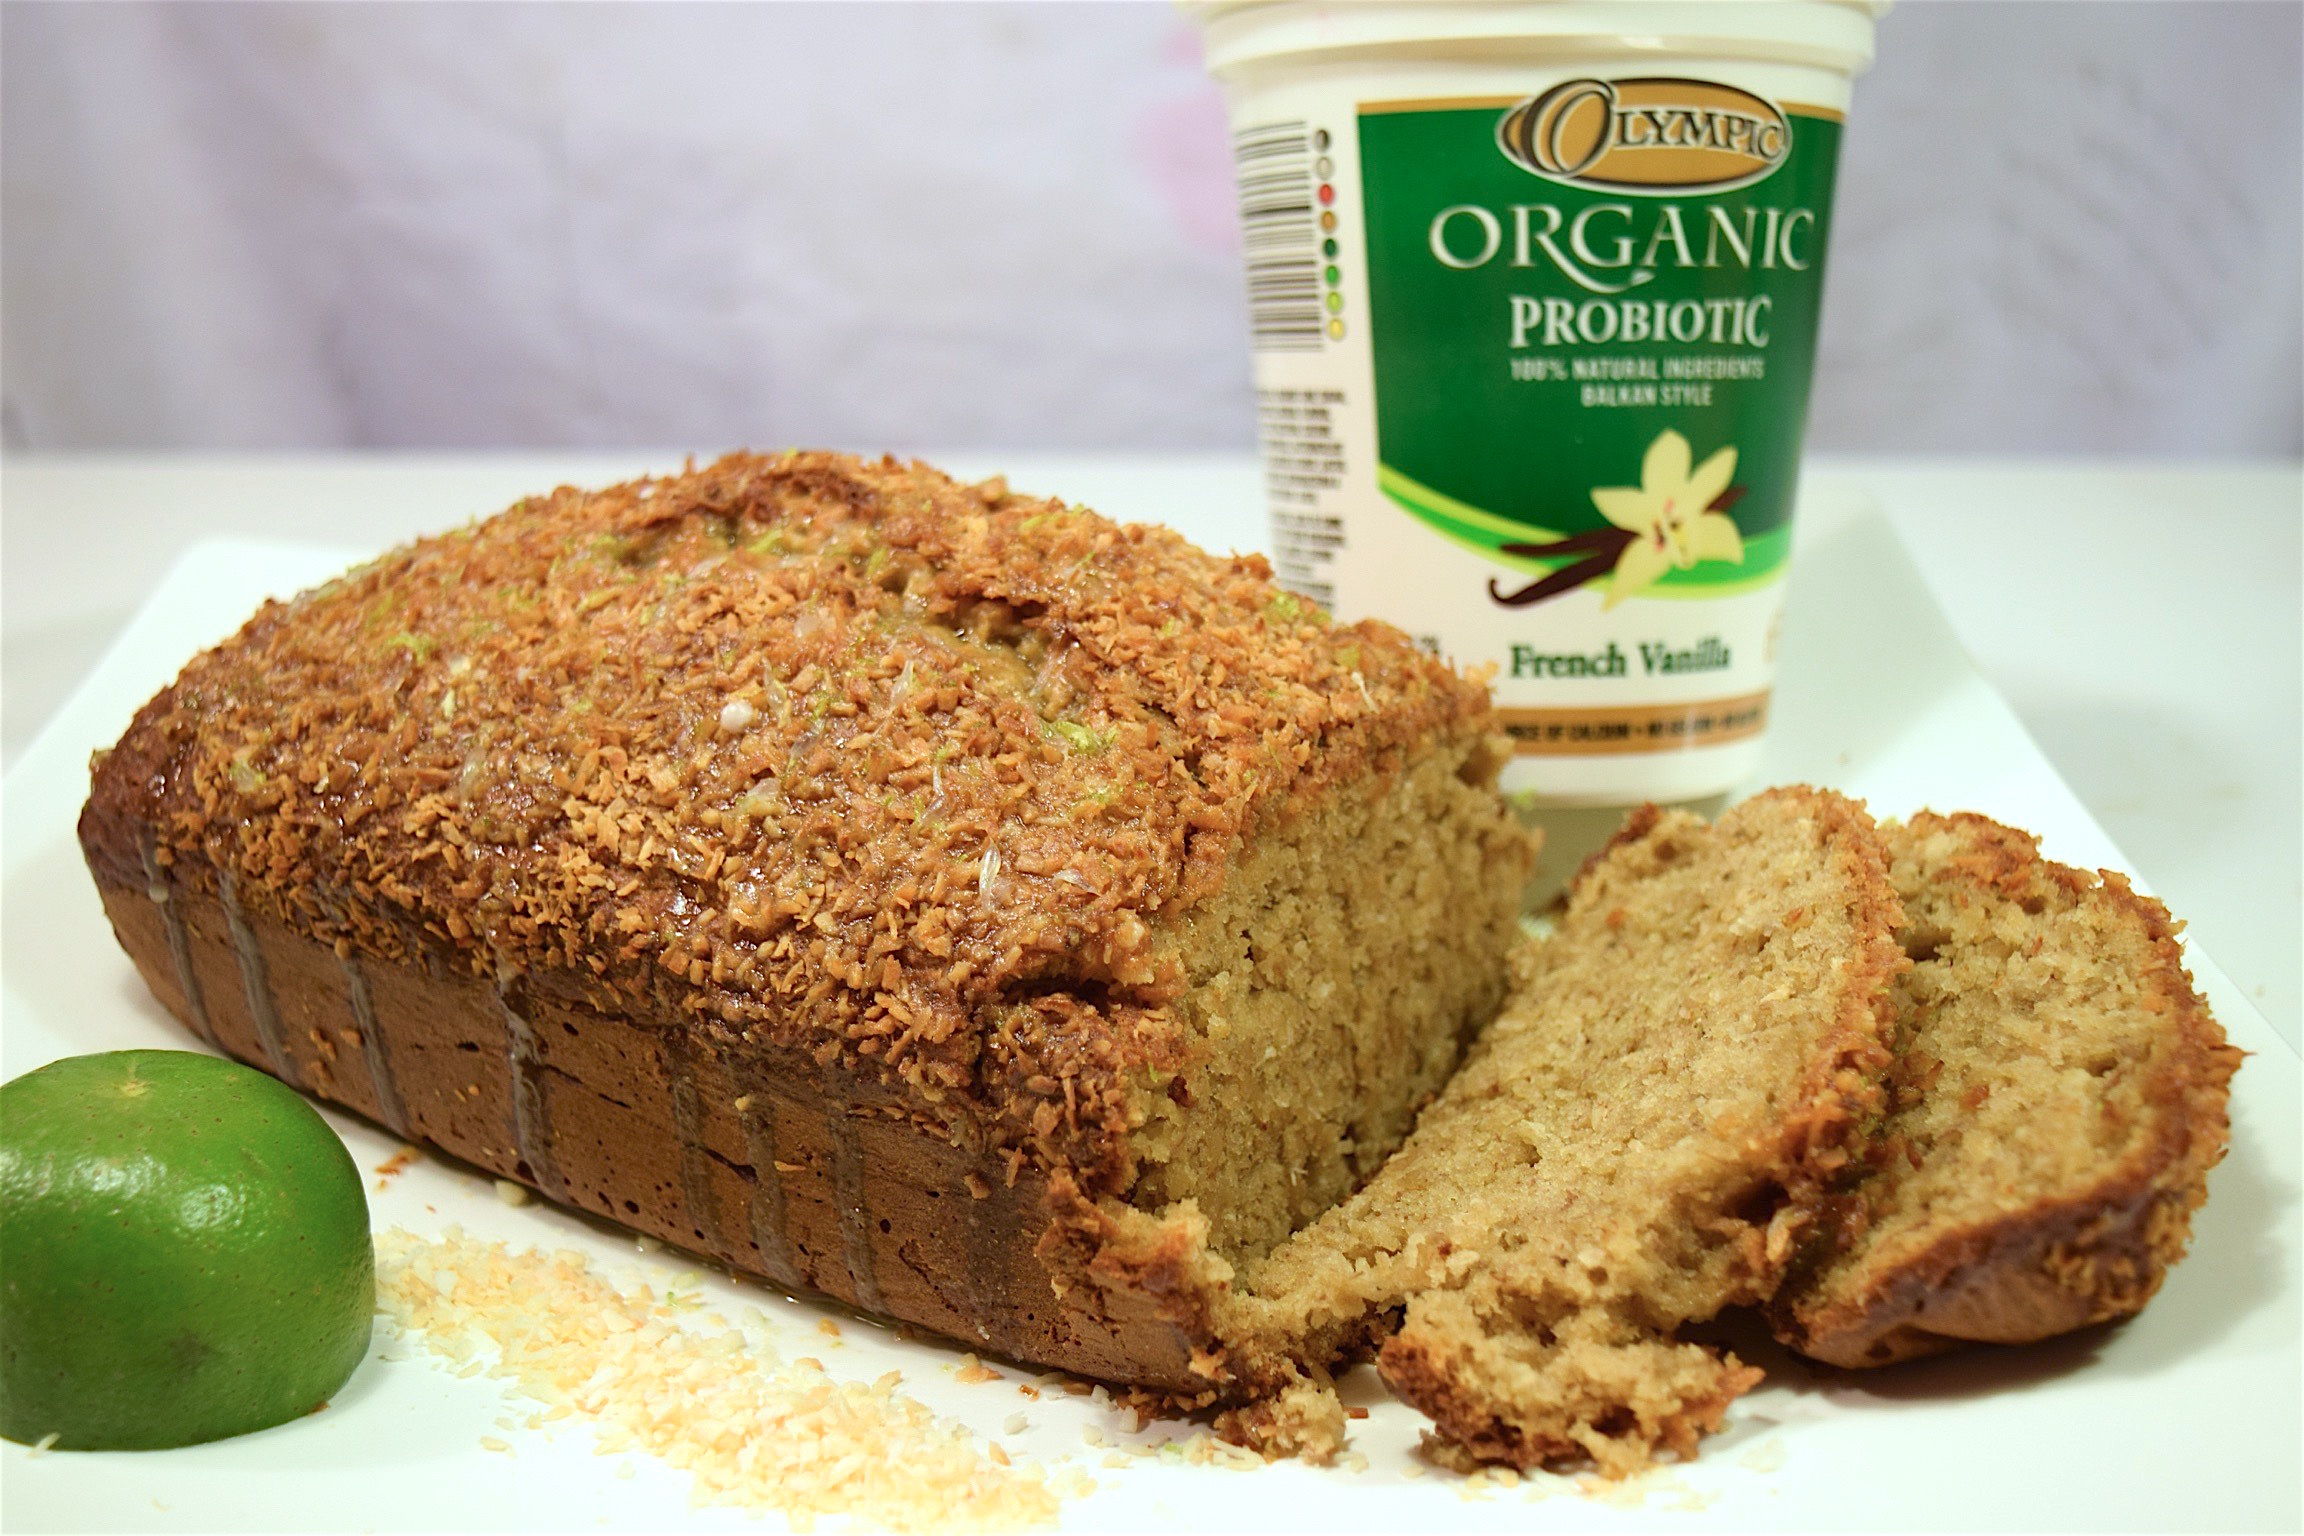 Toasted Coconut Lime Banana Bread #OlympicDairyGood